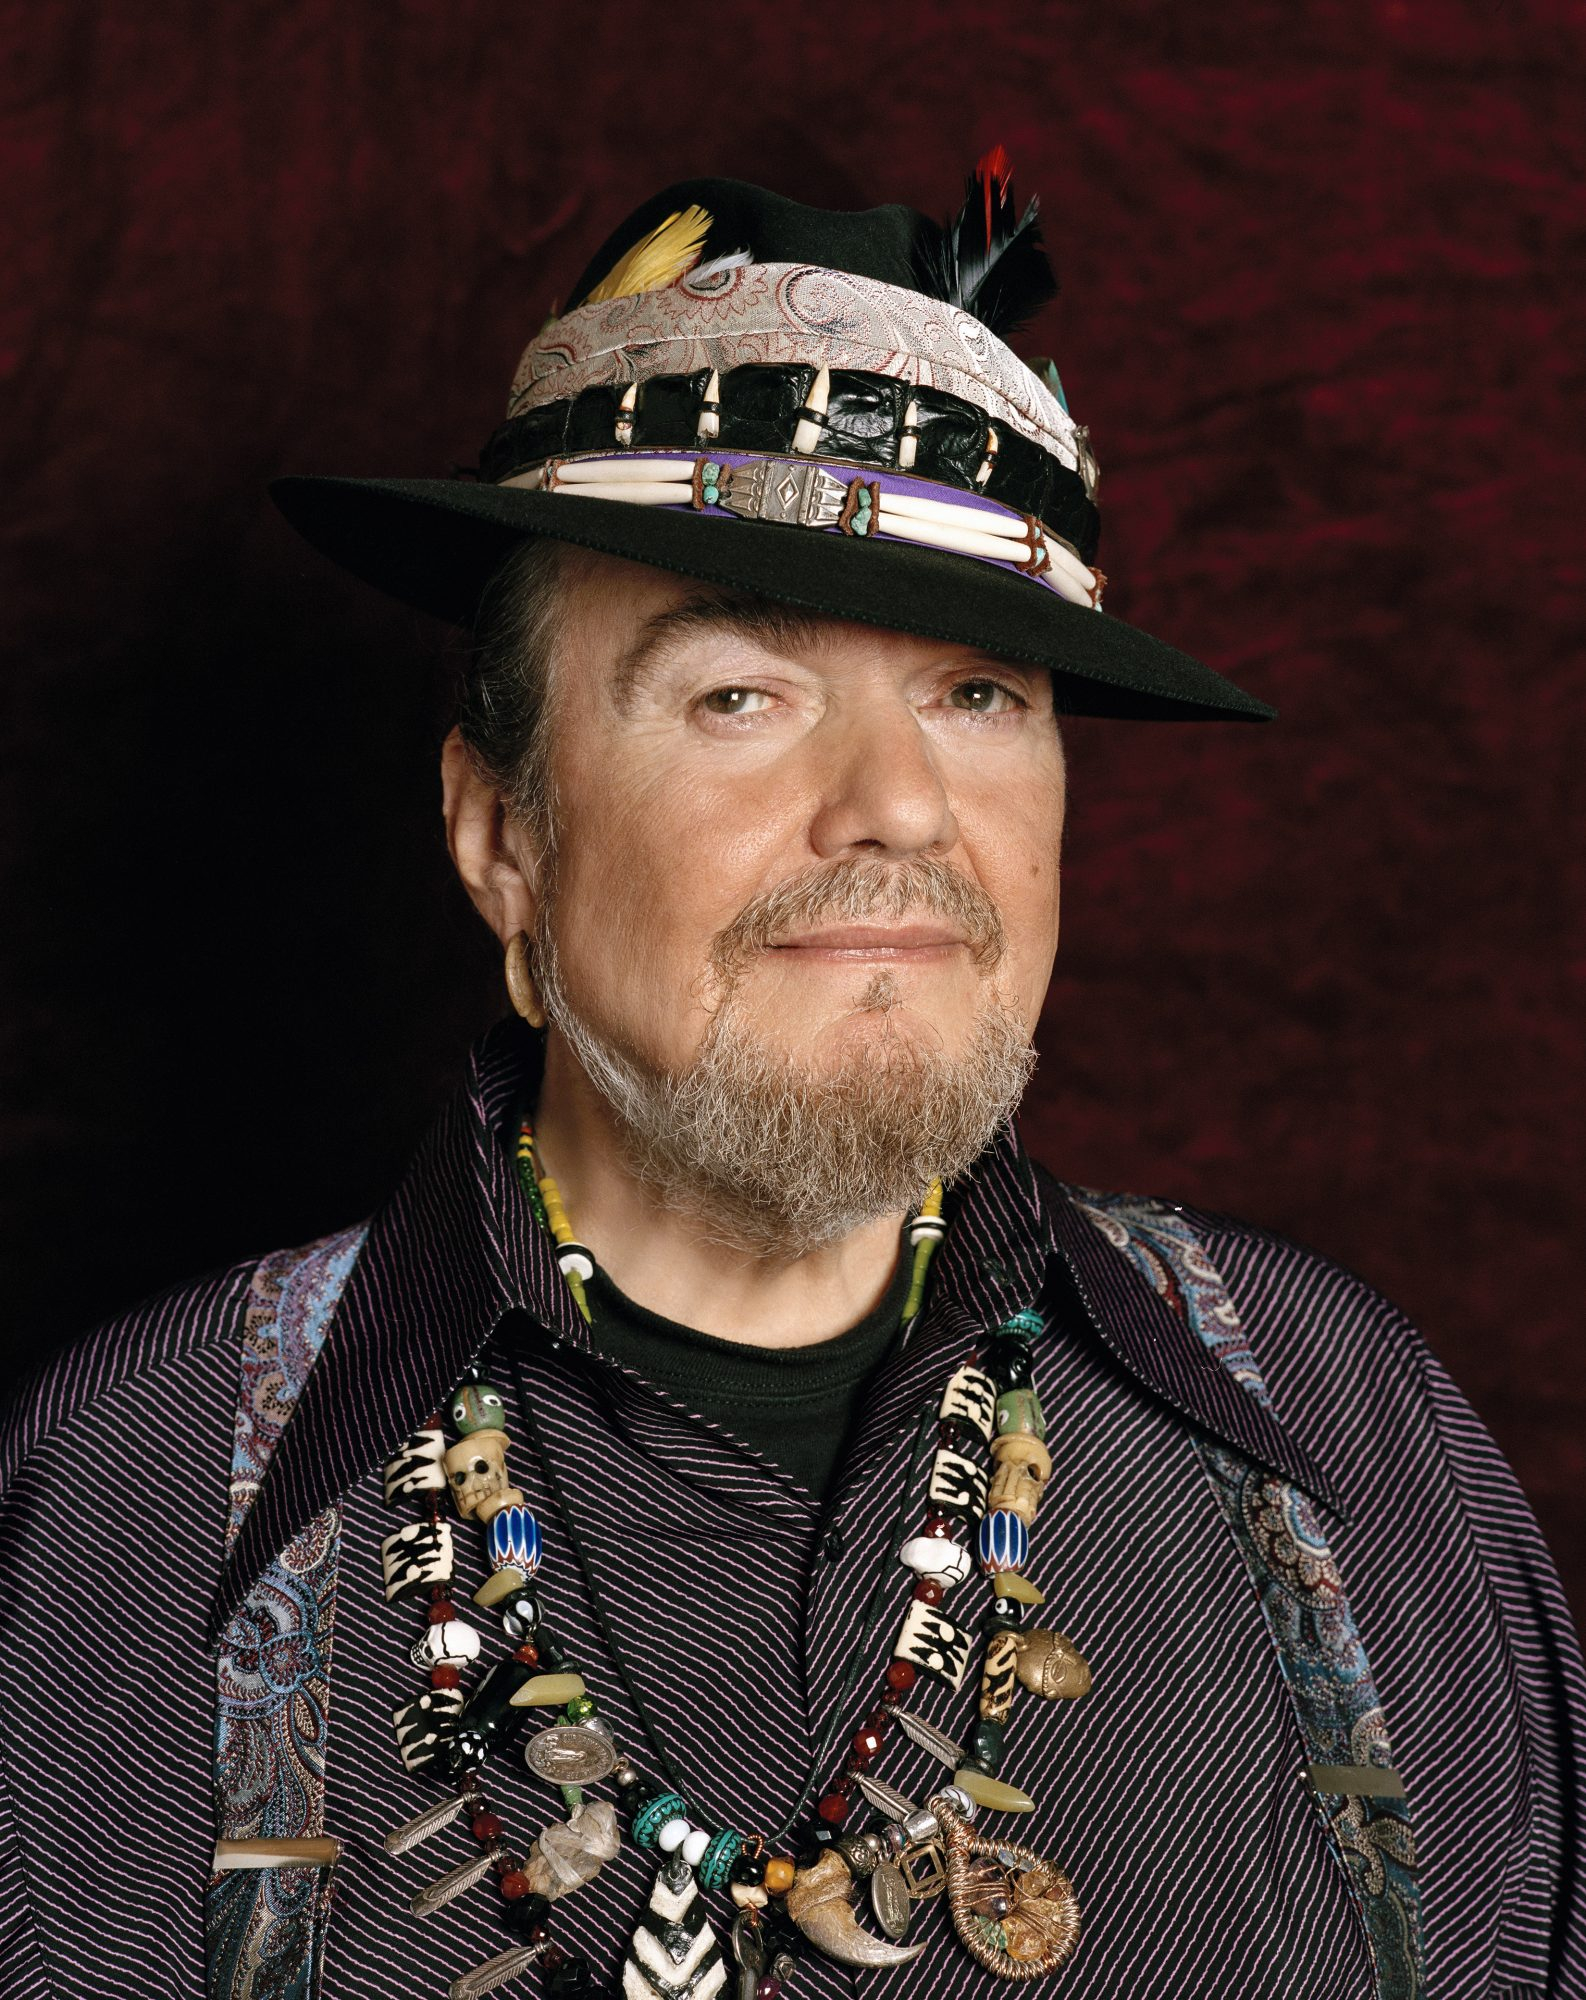 dr-john-photo-credit-bruce-weber.jpg